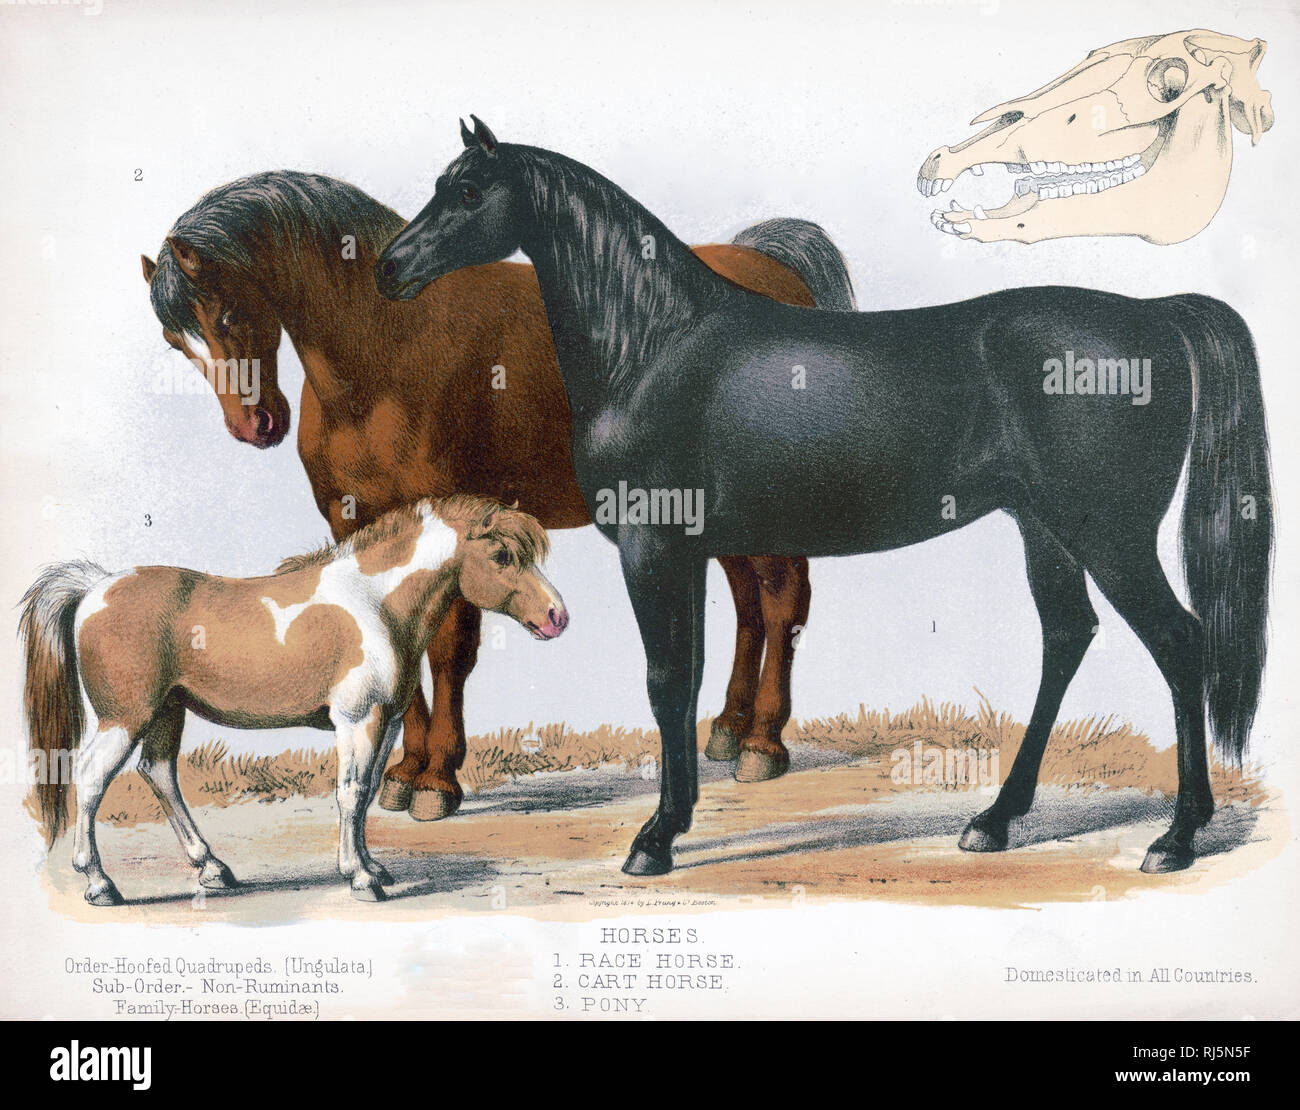 Print shows a race horse, a work horse, and a pony, all full-length, standing; also shows a skull - Hoofed Quadrupeds [Ungulata]. Sub-order - Non-Ruminants - Stock Image